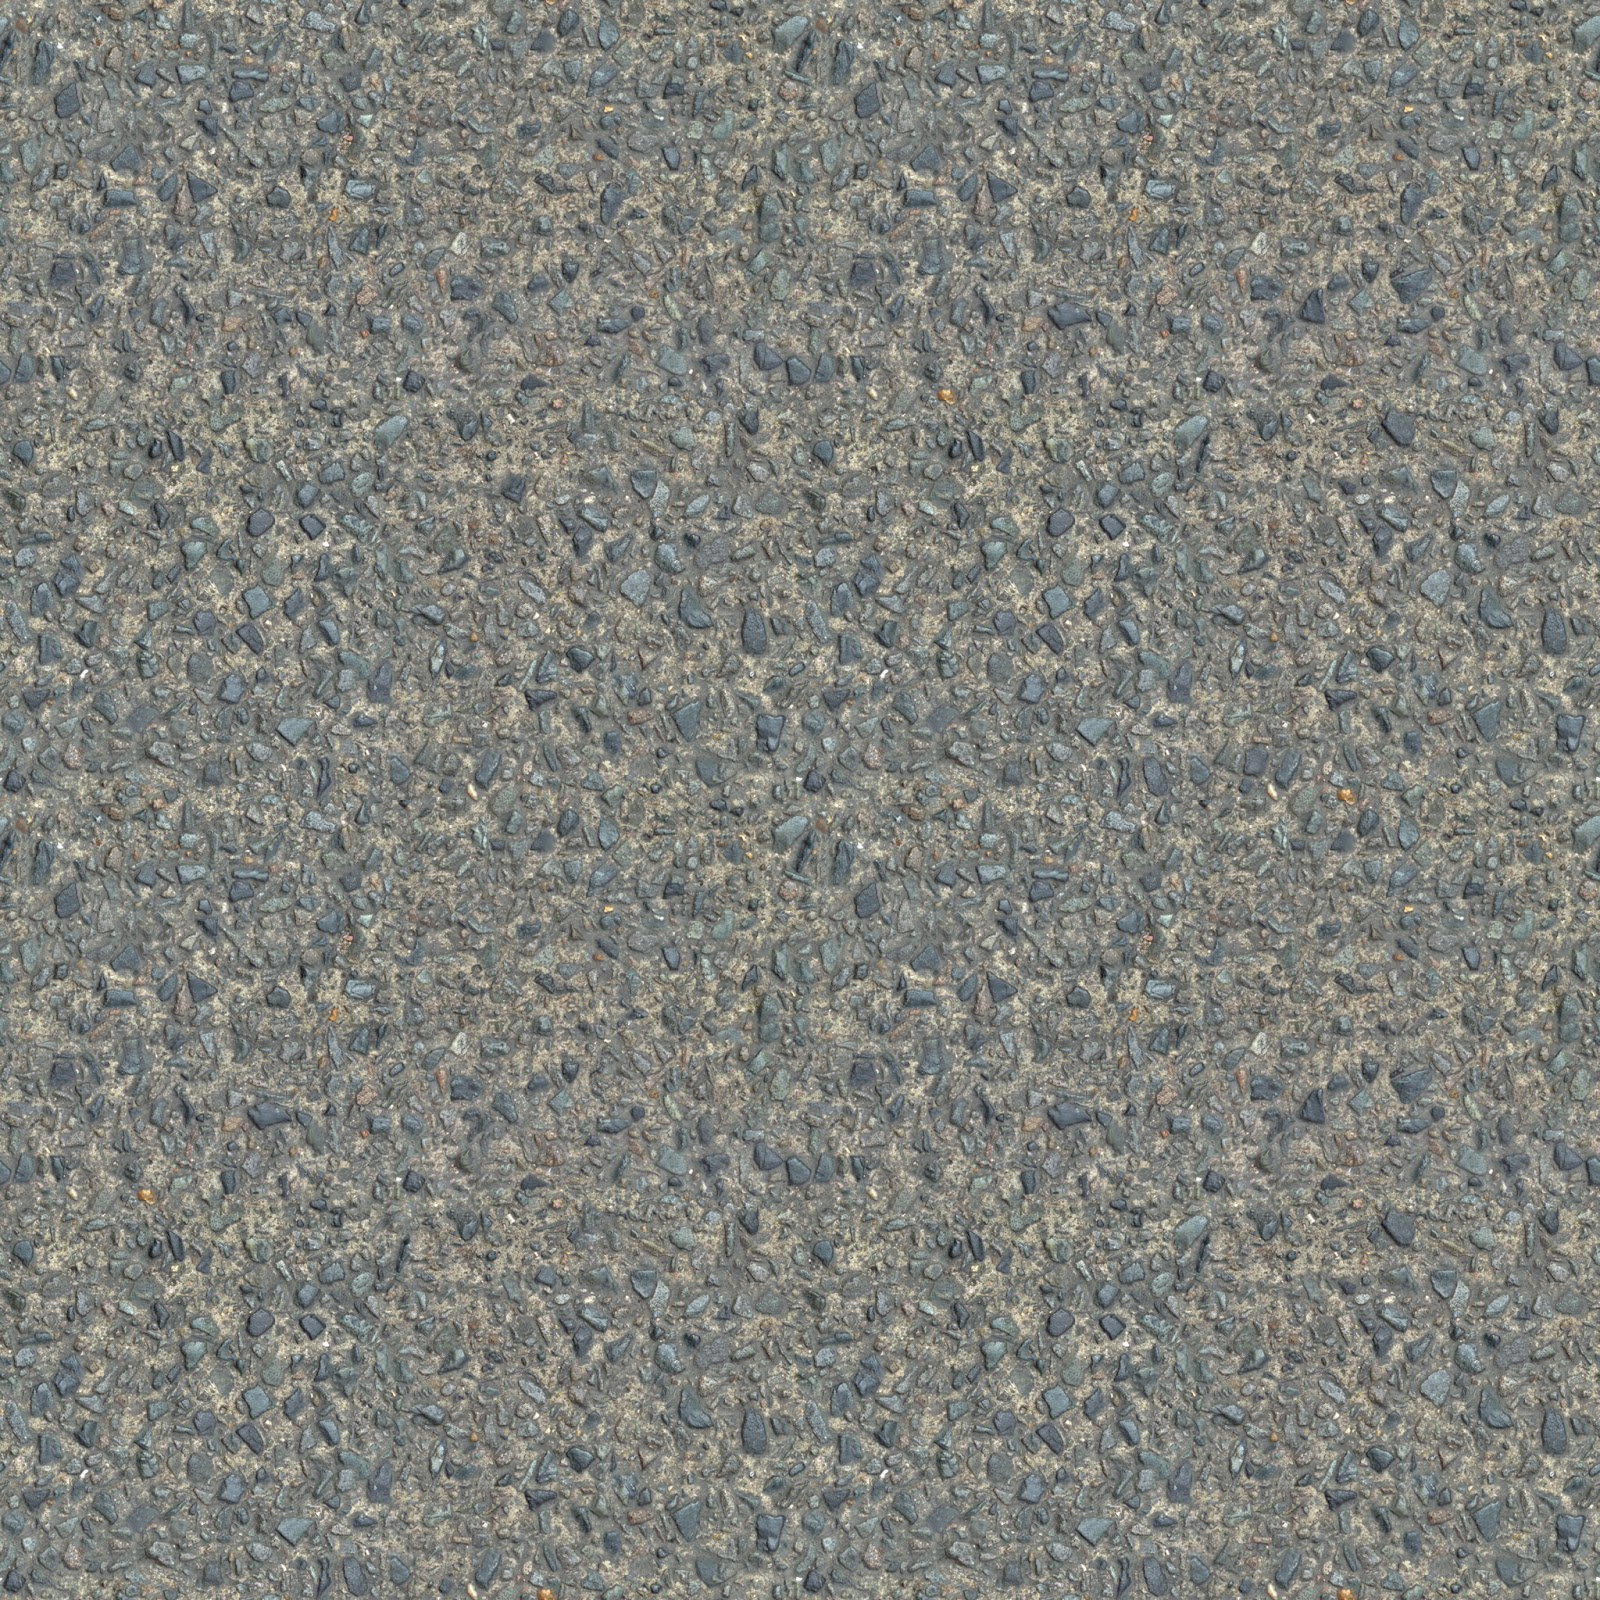 (CONCRETE 16) seamless floor granite stones texture